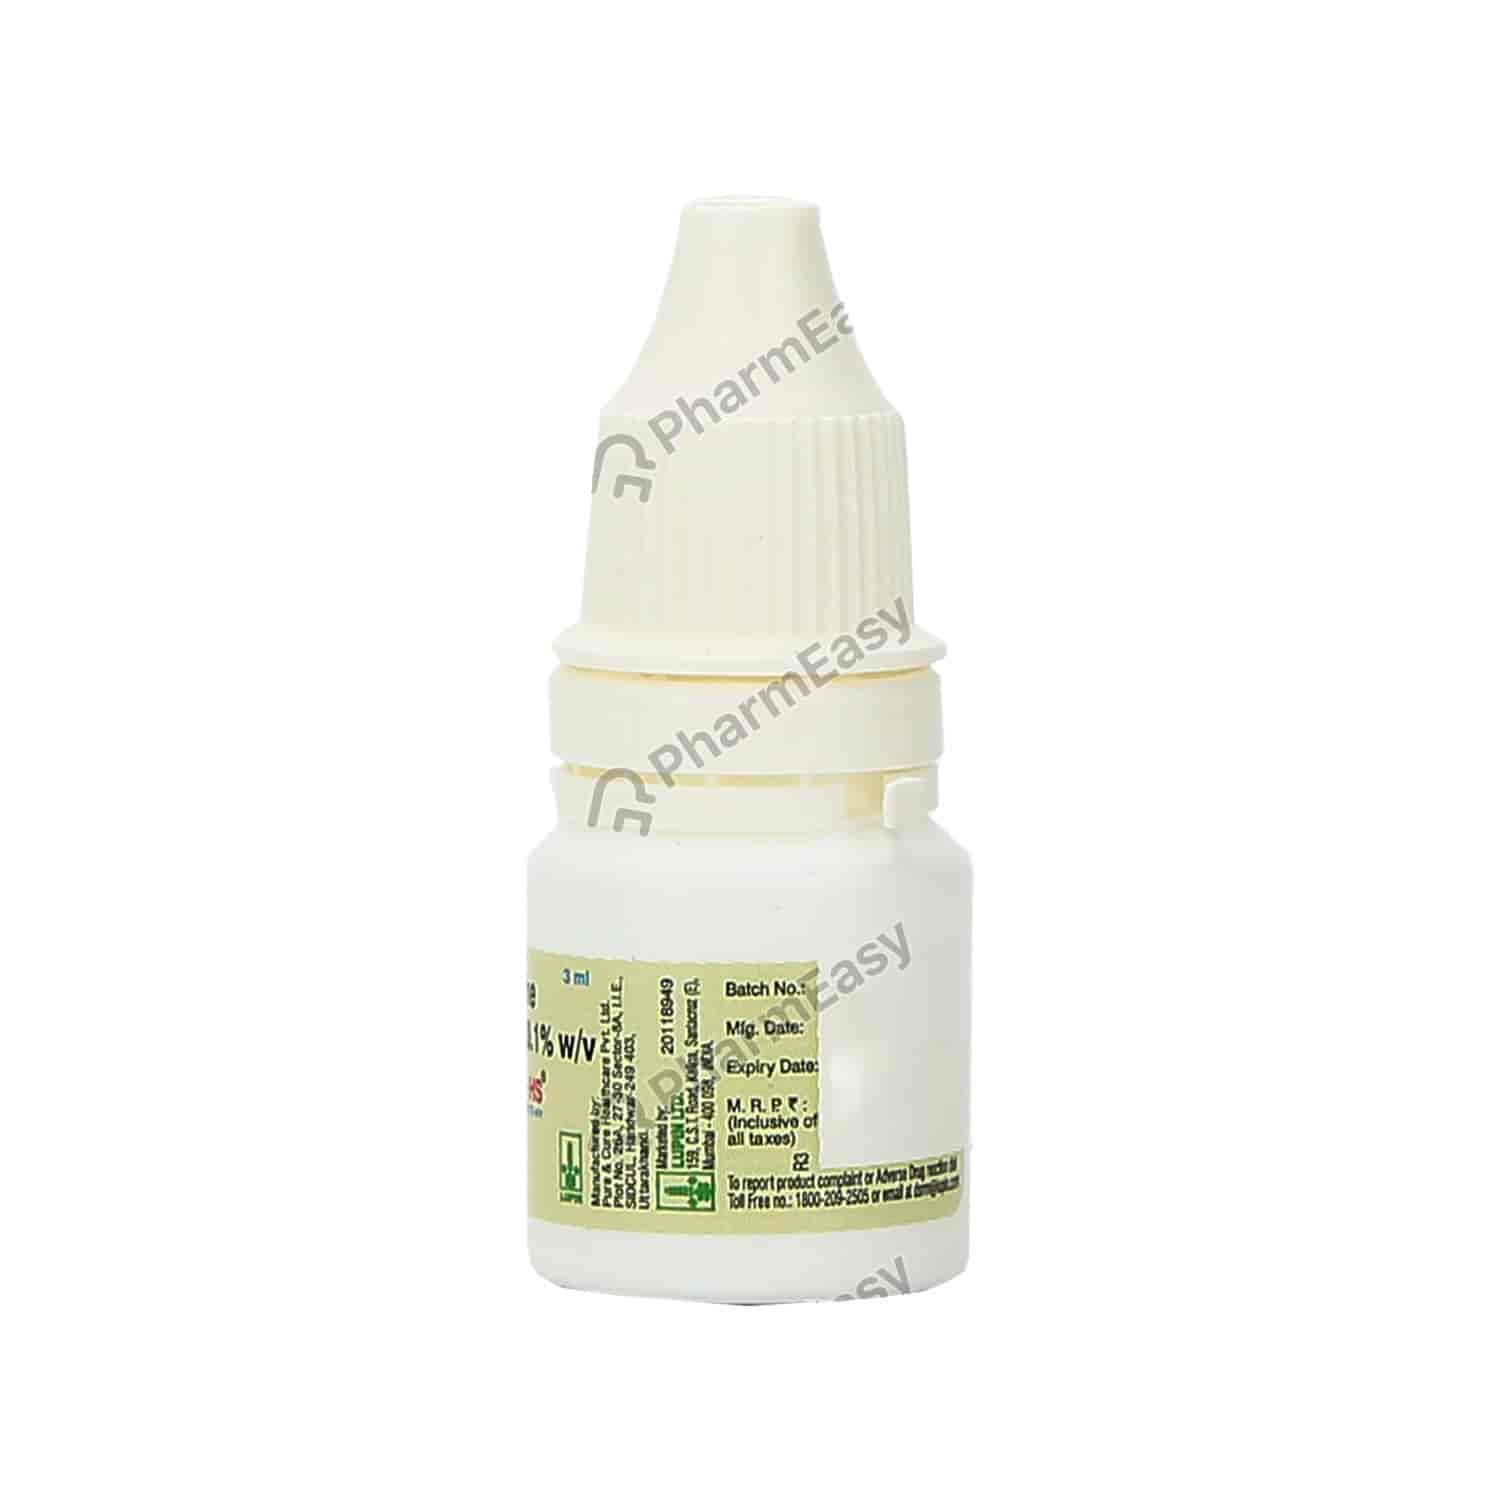 Hydroeyes Hs Eye Drops 3ml